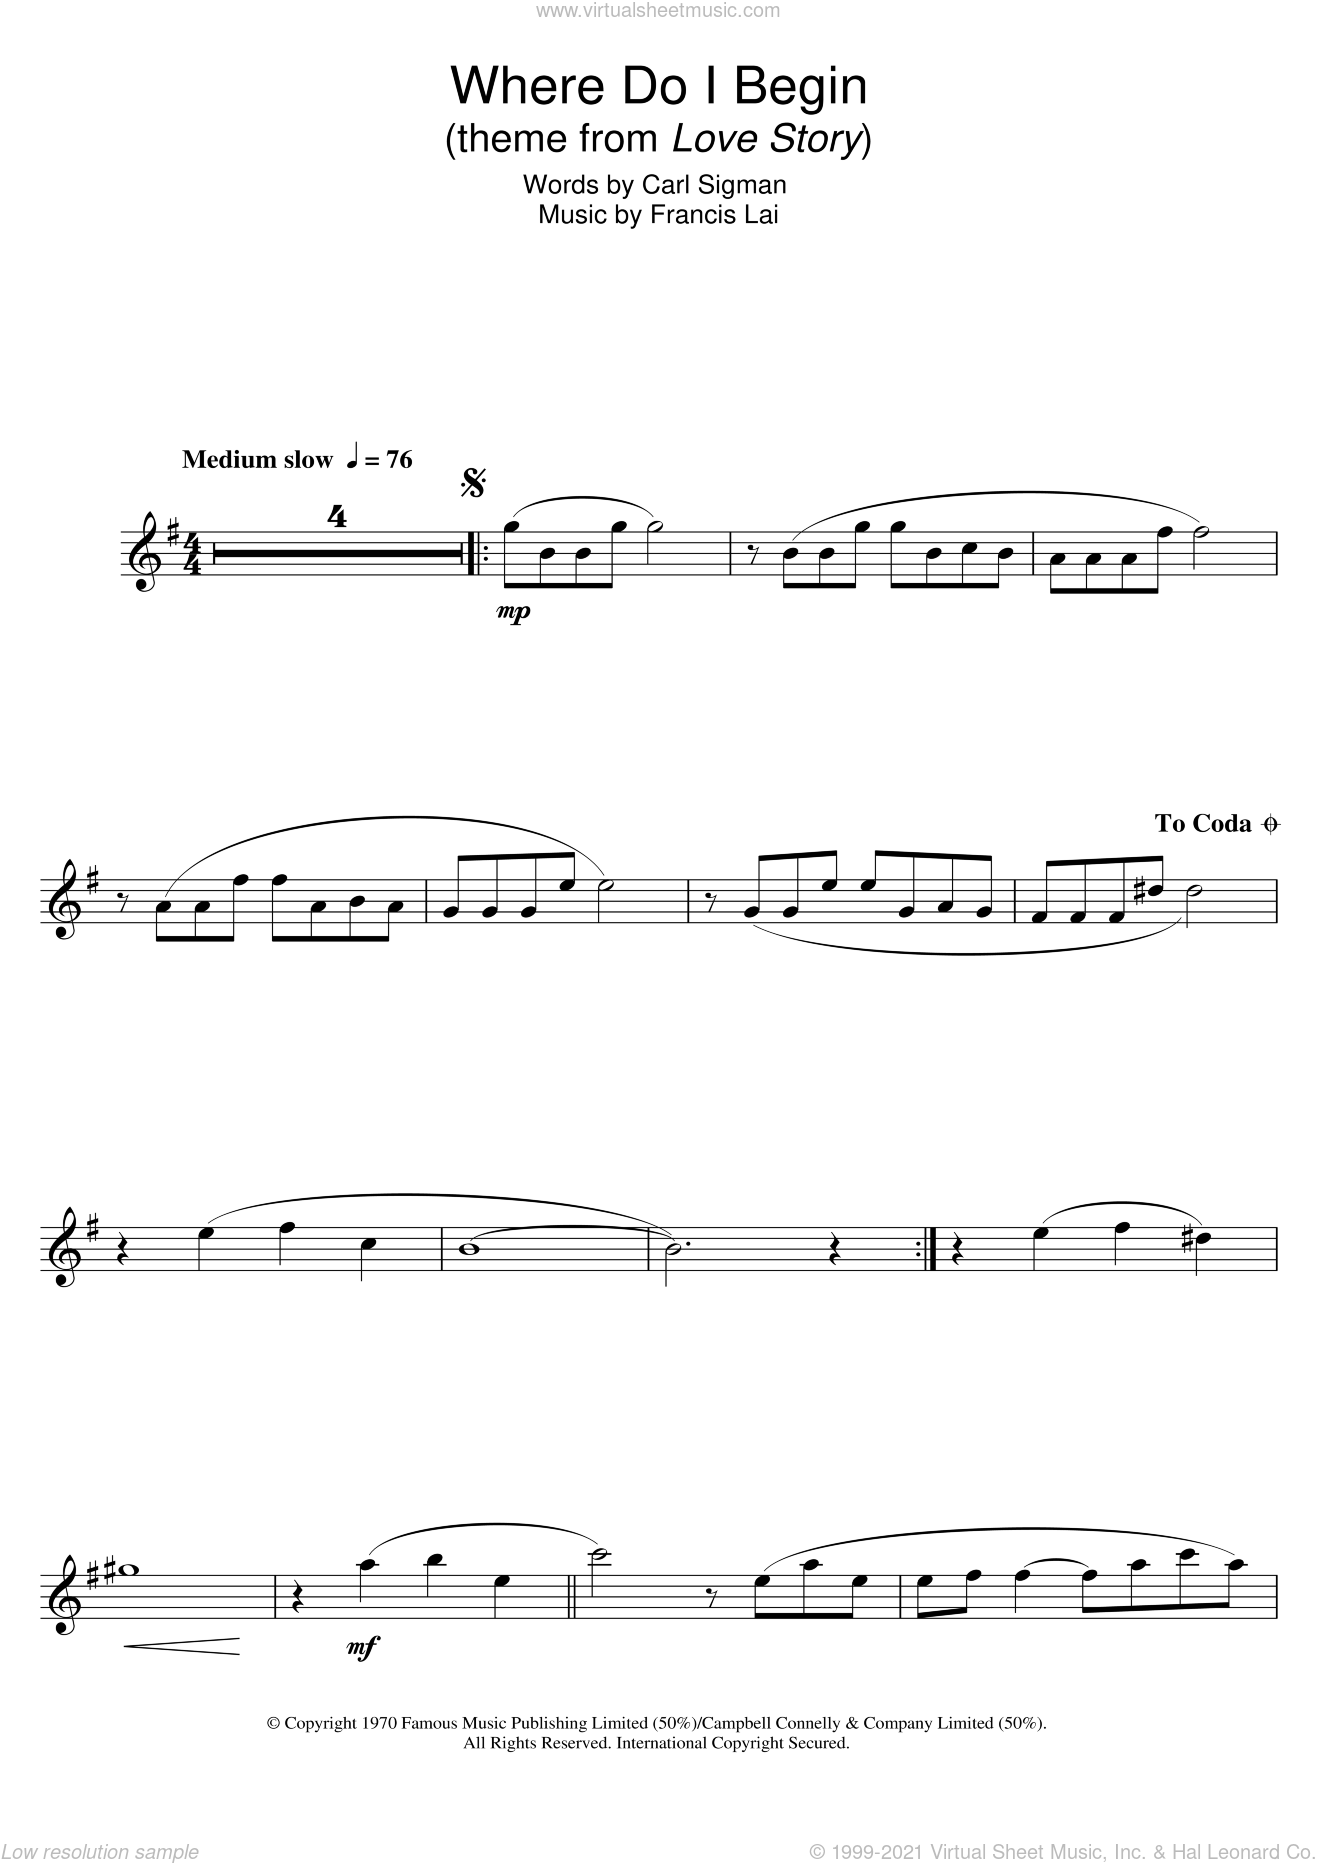 Where Do I Begin (theme from Love Story) sheet music for clarinet solo by Francis Lai and Carl Sigman, intermediate skill level